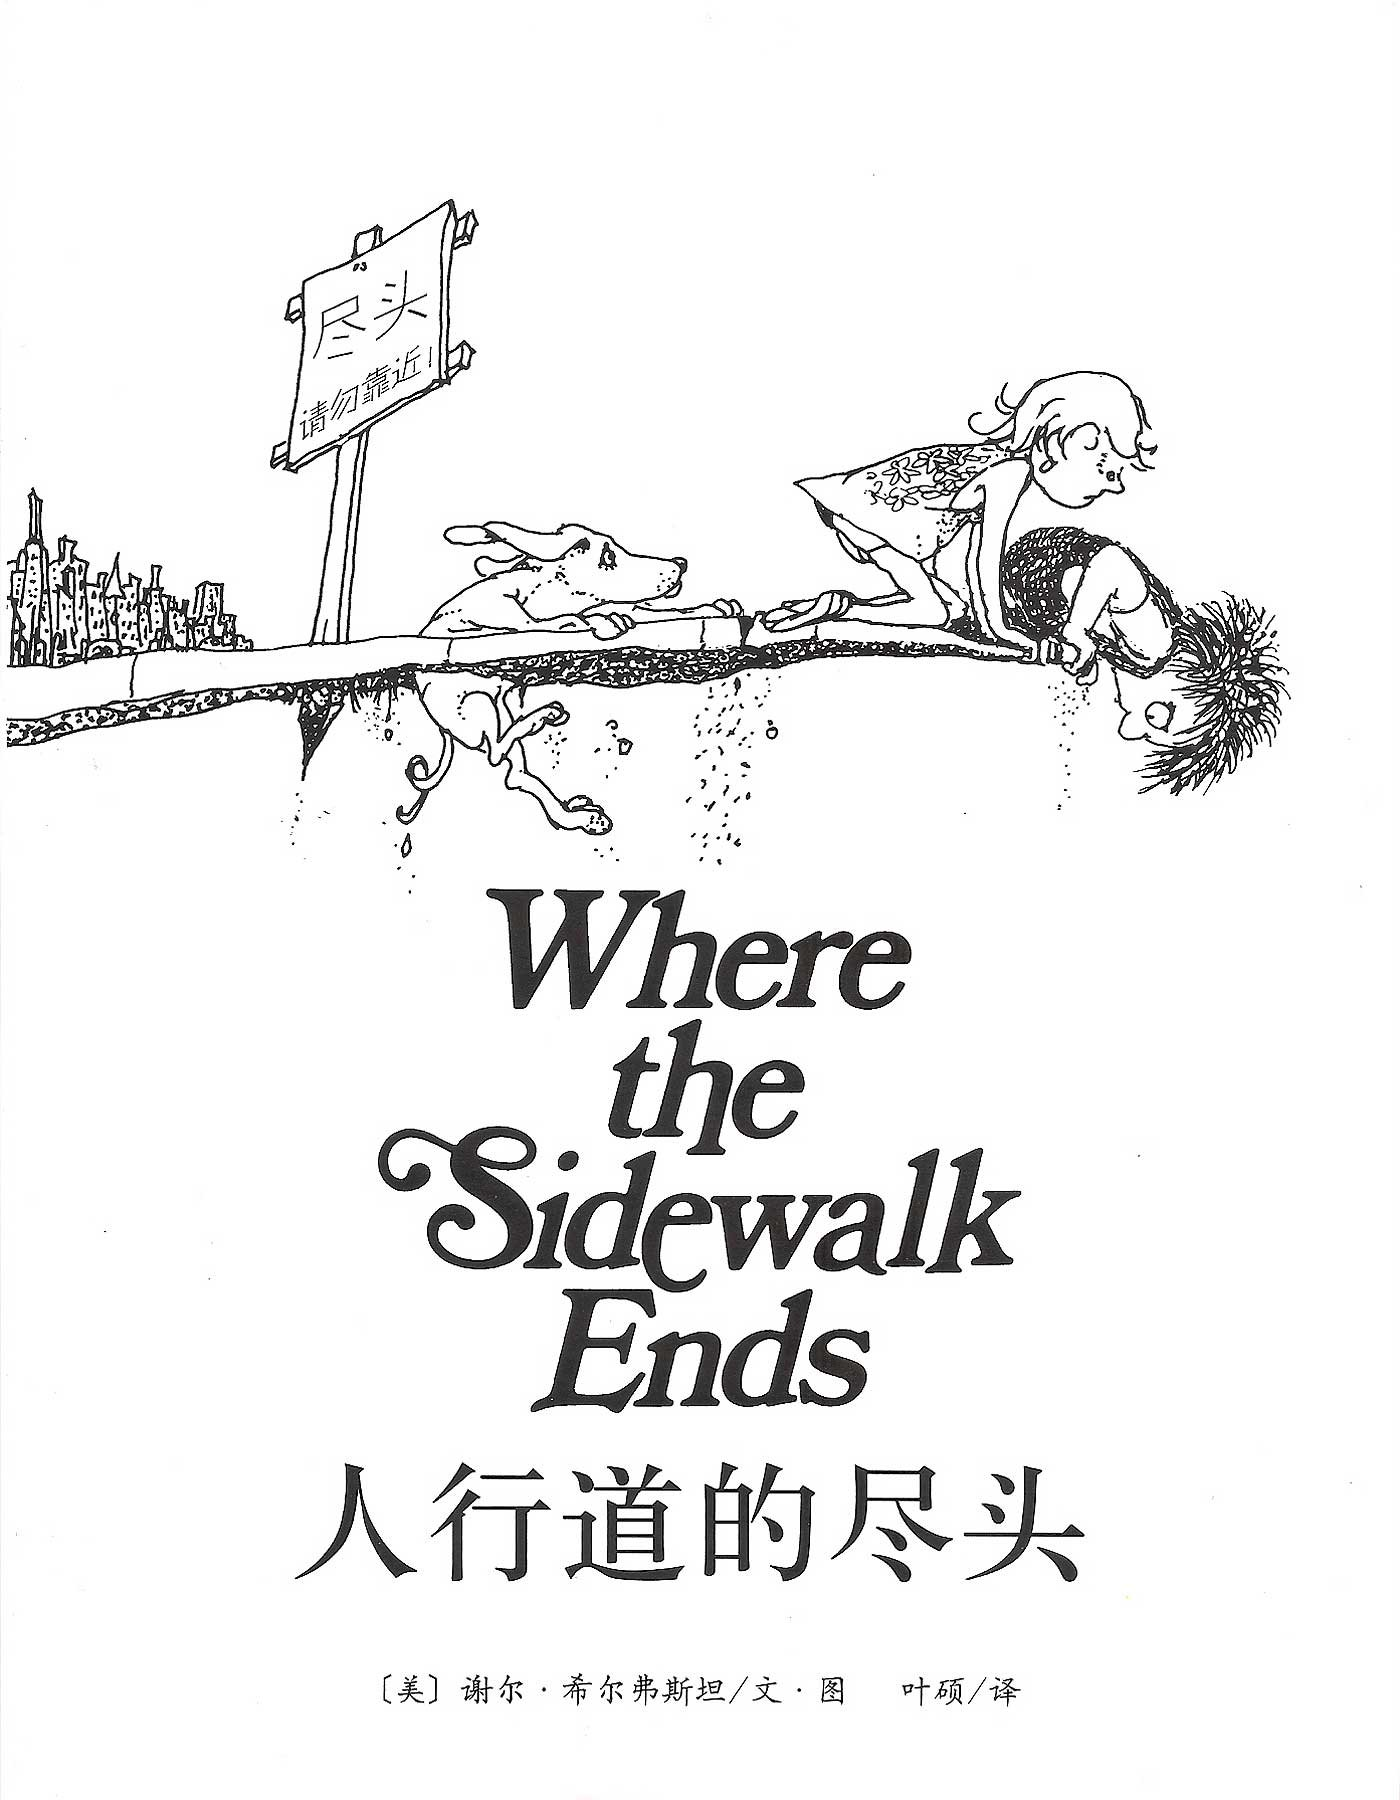 Download Where the Sidewalk Ends:The Poems and Drawings of Shel Silverstein (Chinese Edition) ebook